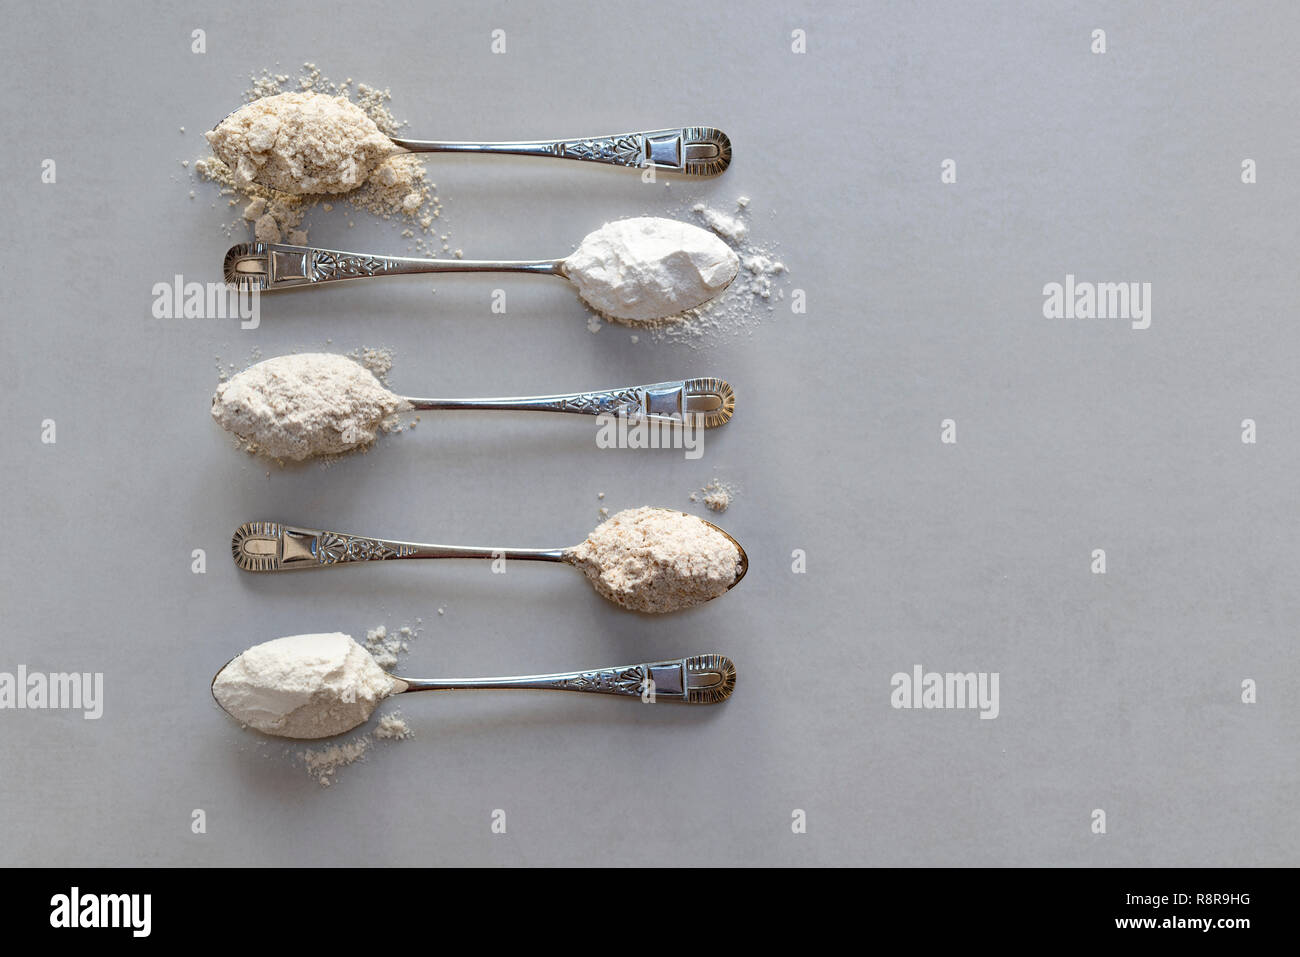 Five spoonfuls of different flours. From the top: oat flour, rice flour, rye flour, wholewheat flour, plain flour. - Stock Image